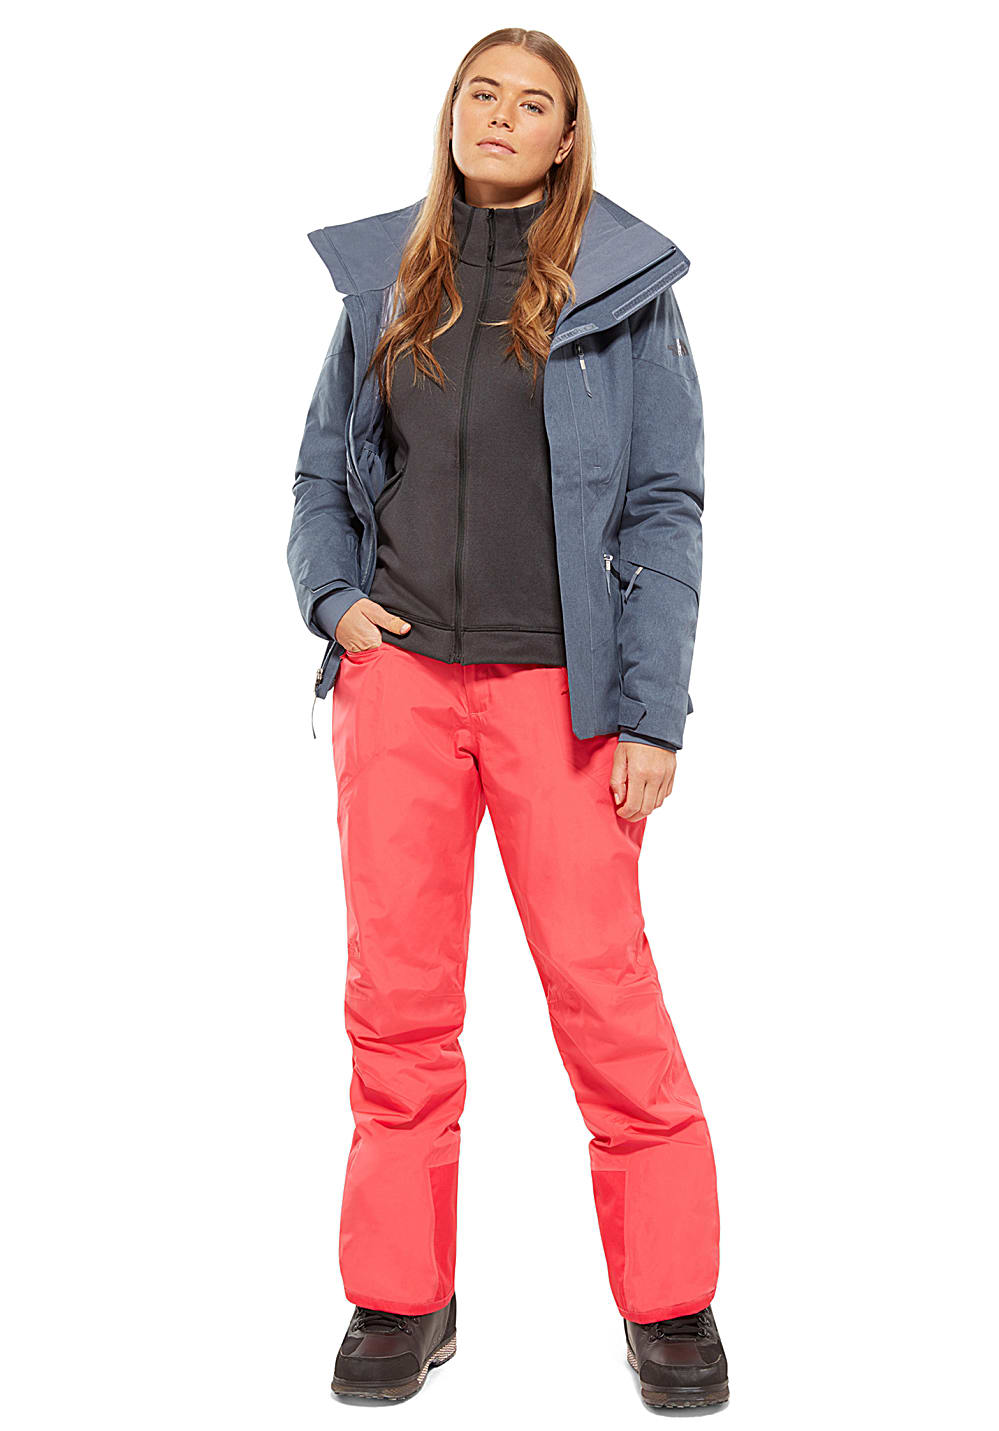 b6252feb92 ... THE NORTH FACE Lenado - Ski Jacket for Women - Grey. Back to Overview.  1  2  3. Previous. Next